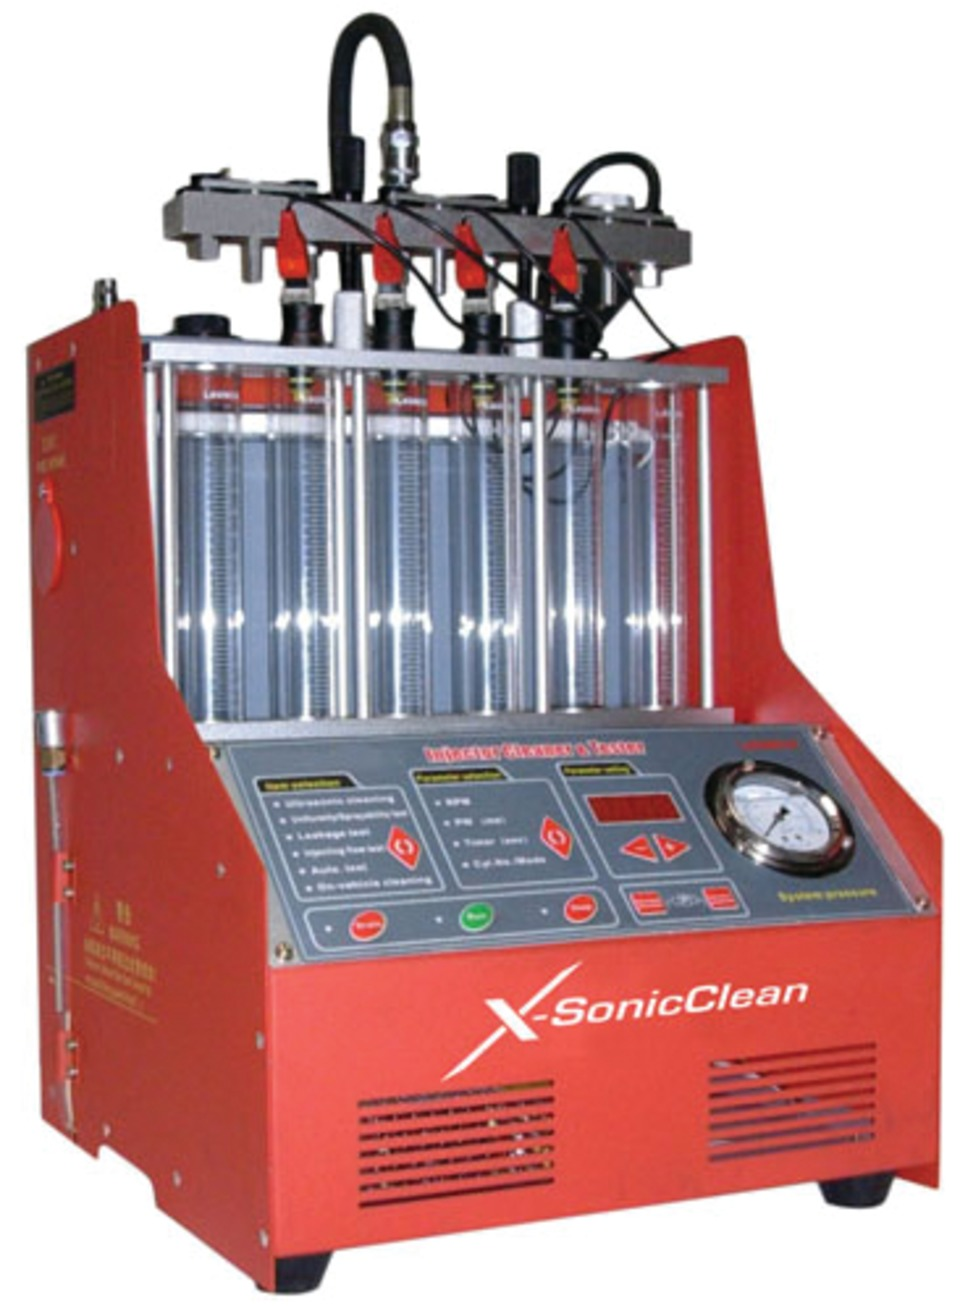 Launch tech usa x sonicclean bt in shop equipment for Parlour equipment